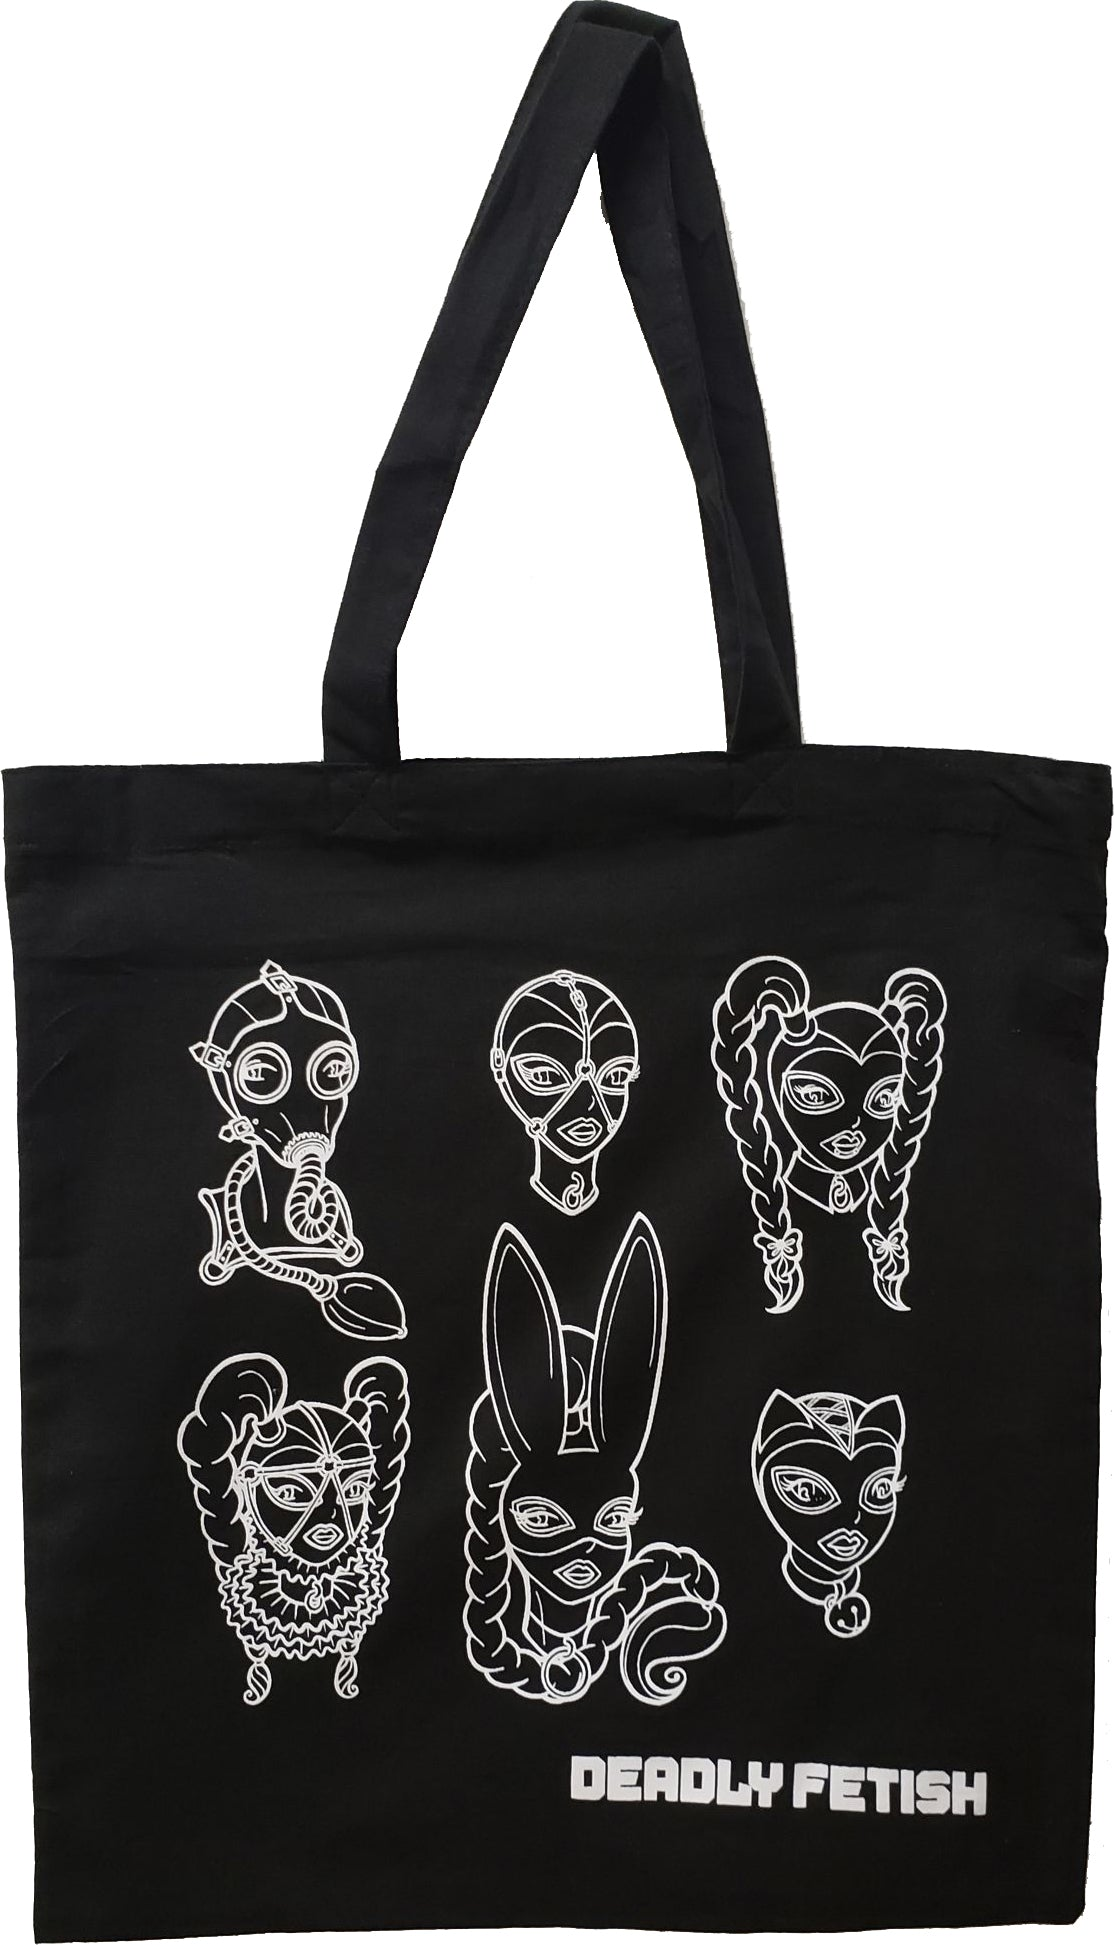 Deadly Fetish Tote Bag